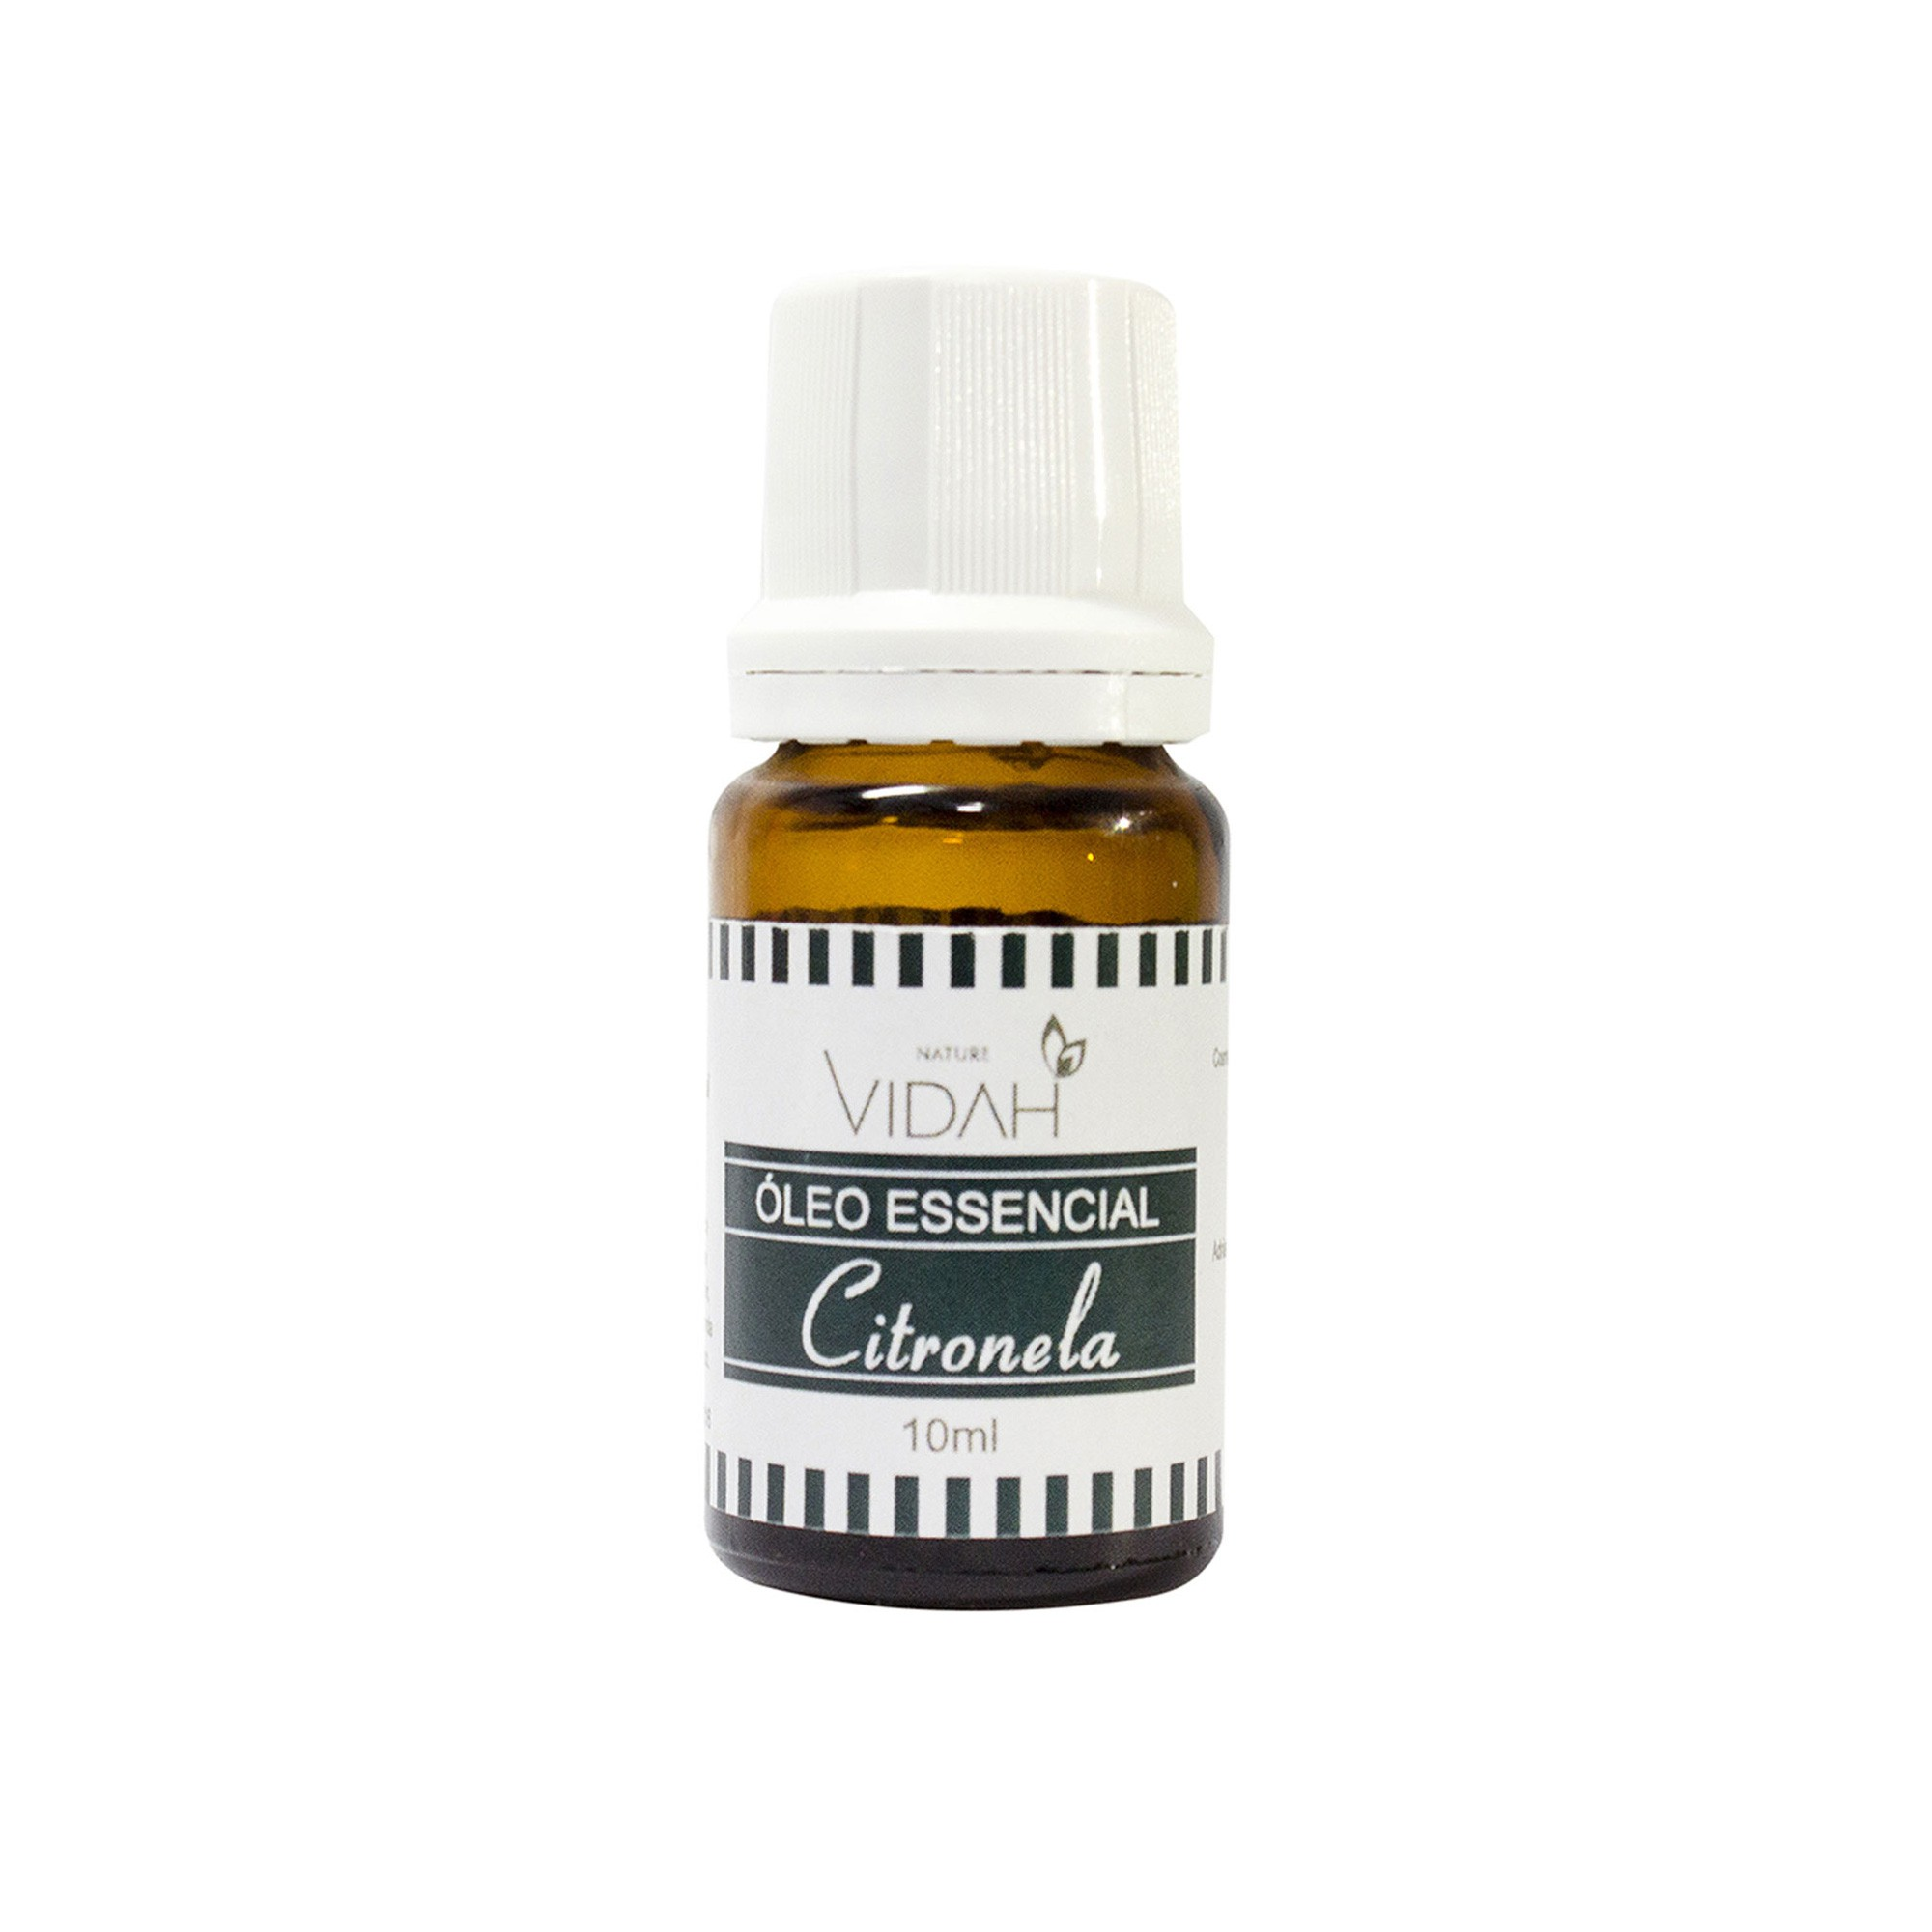 Óleo Essencial de Citronela Vidah - 10 ML